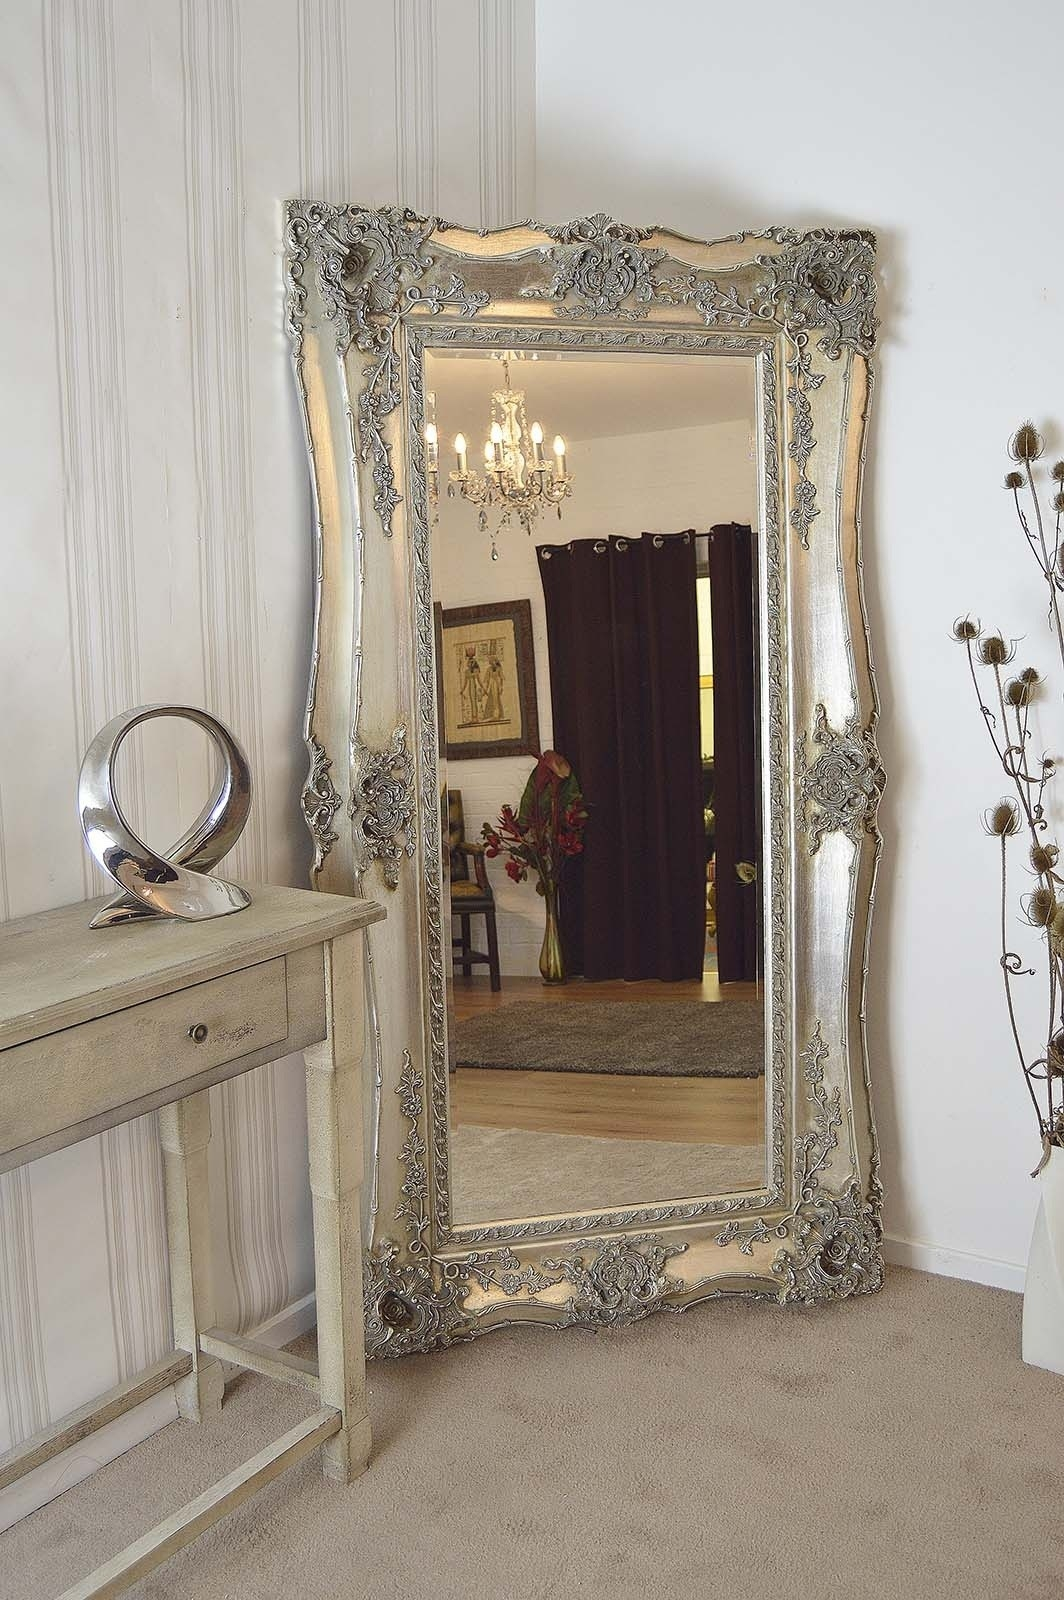 Bedroom Furniture Unique Mirrors Full Length Mirror Small Pertaining To Large Floor Standing Mirrors (Image 4 of 15)